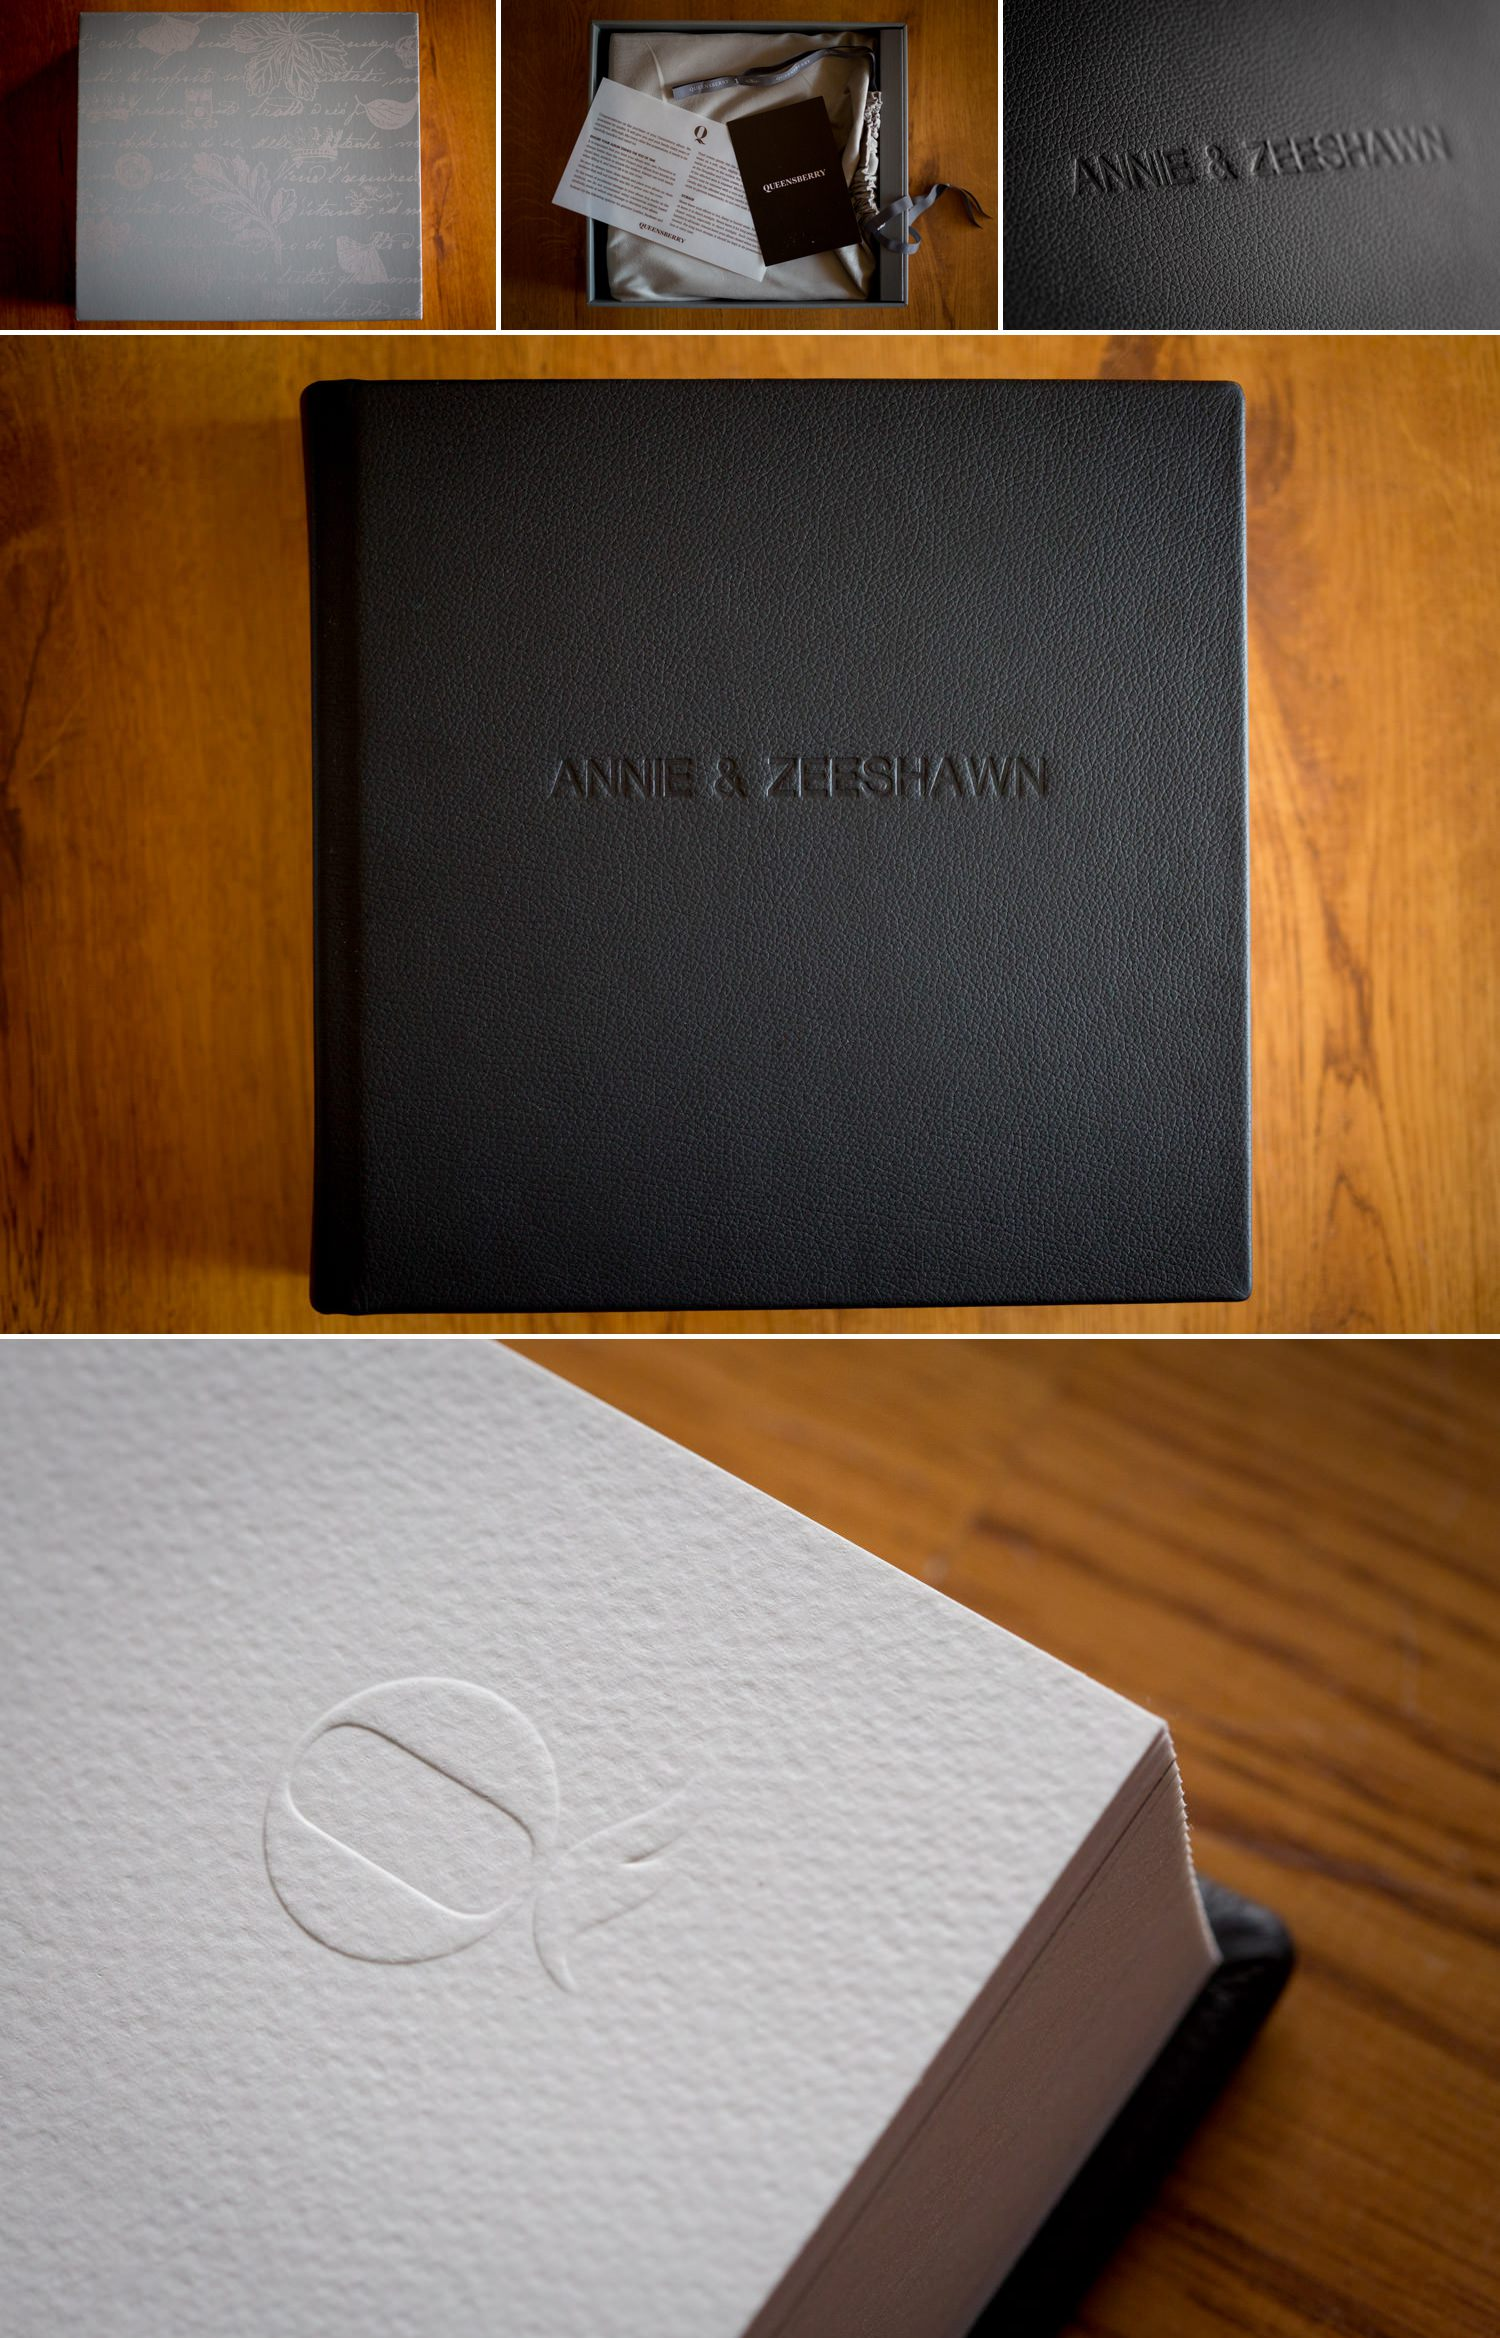 A photo collage of a leather bound wedding album.